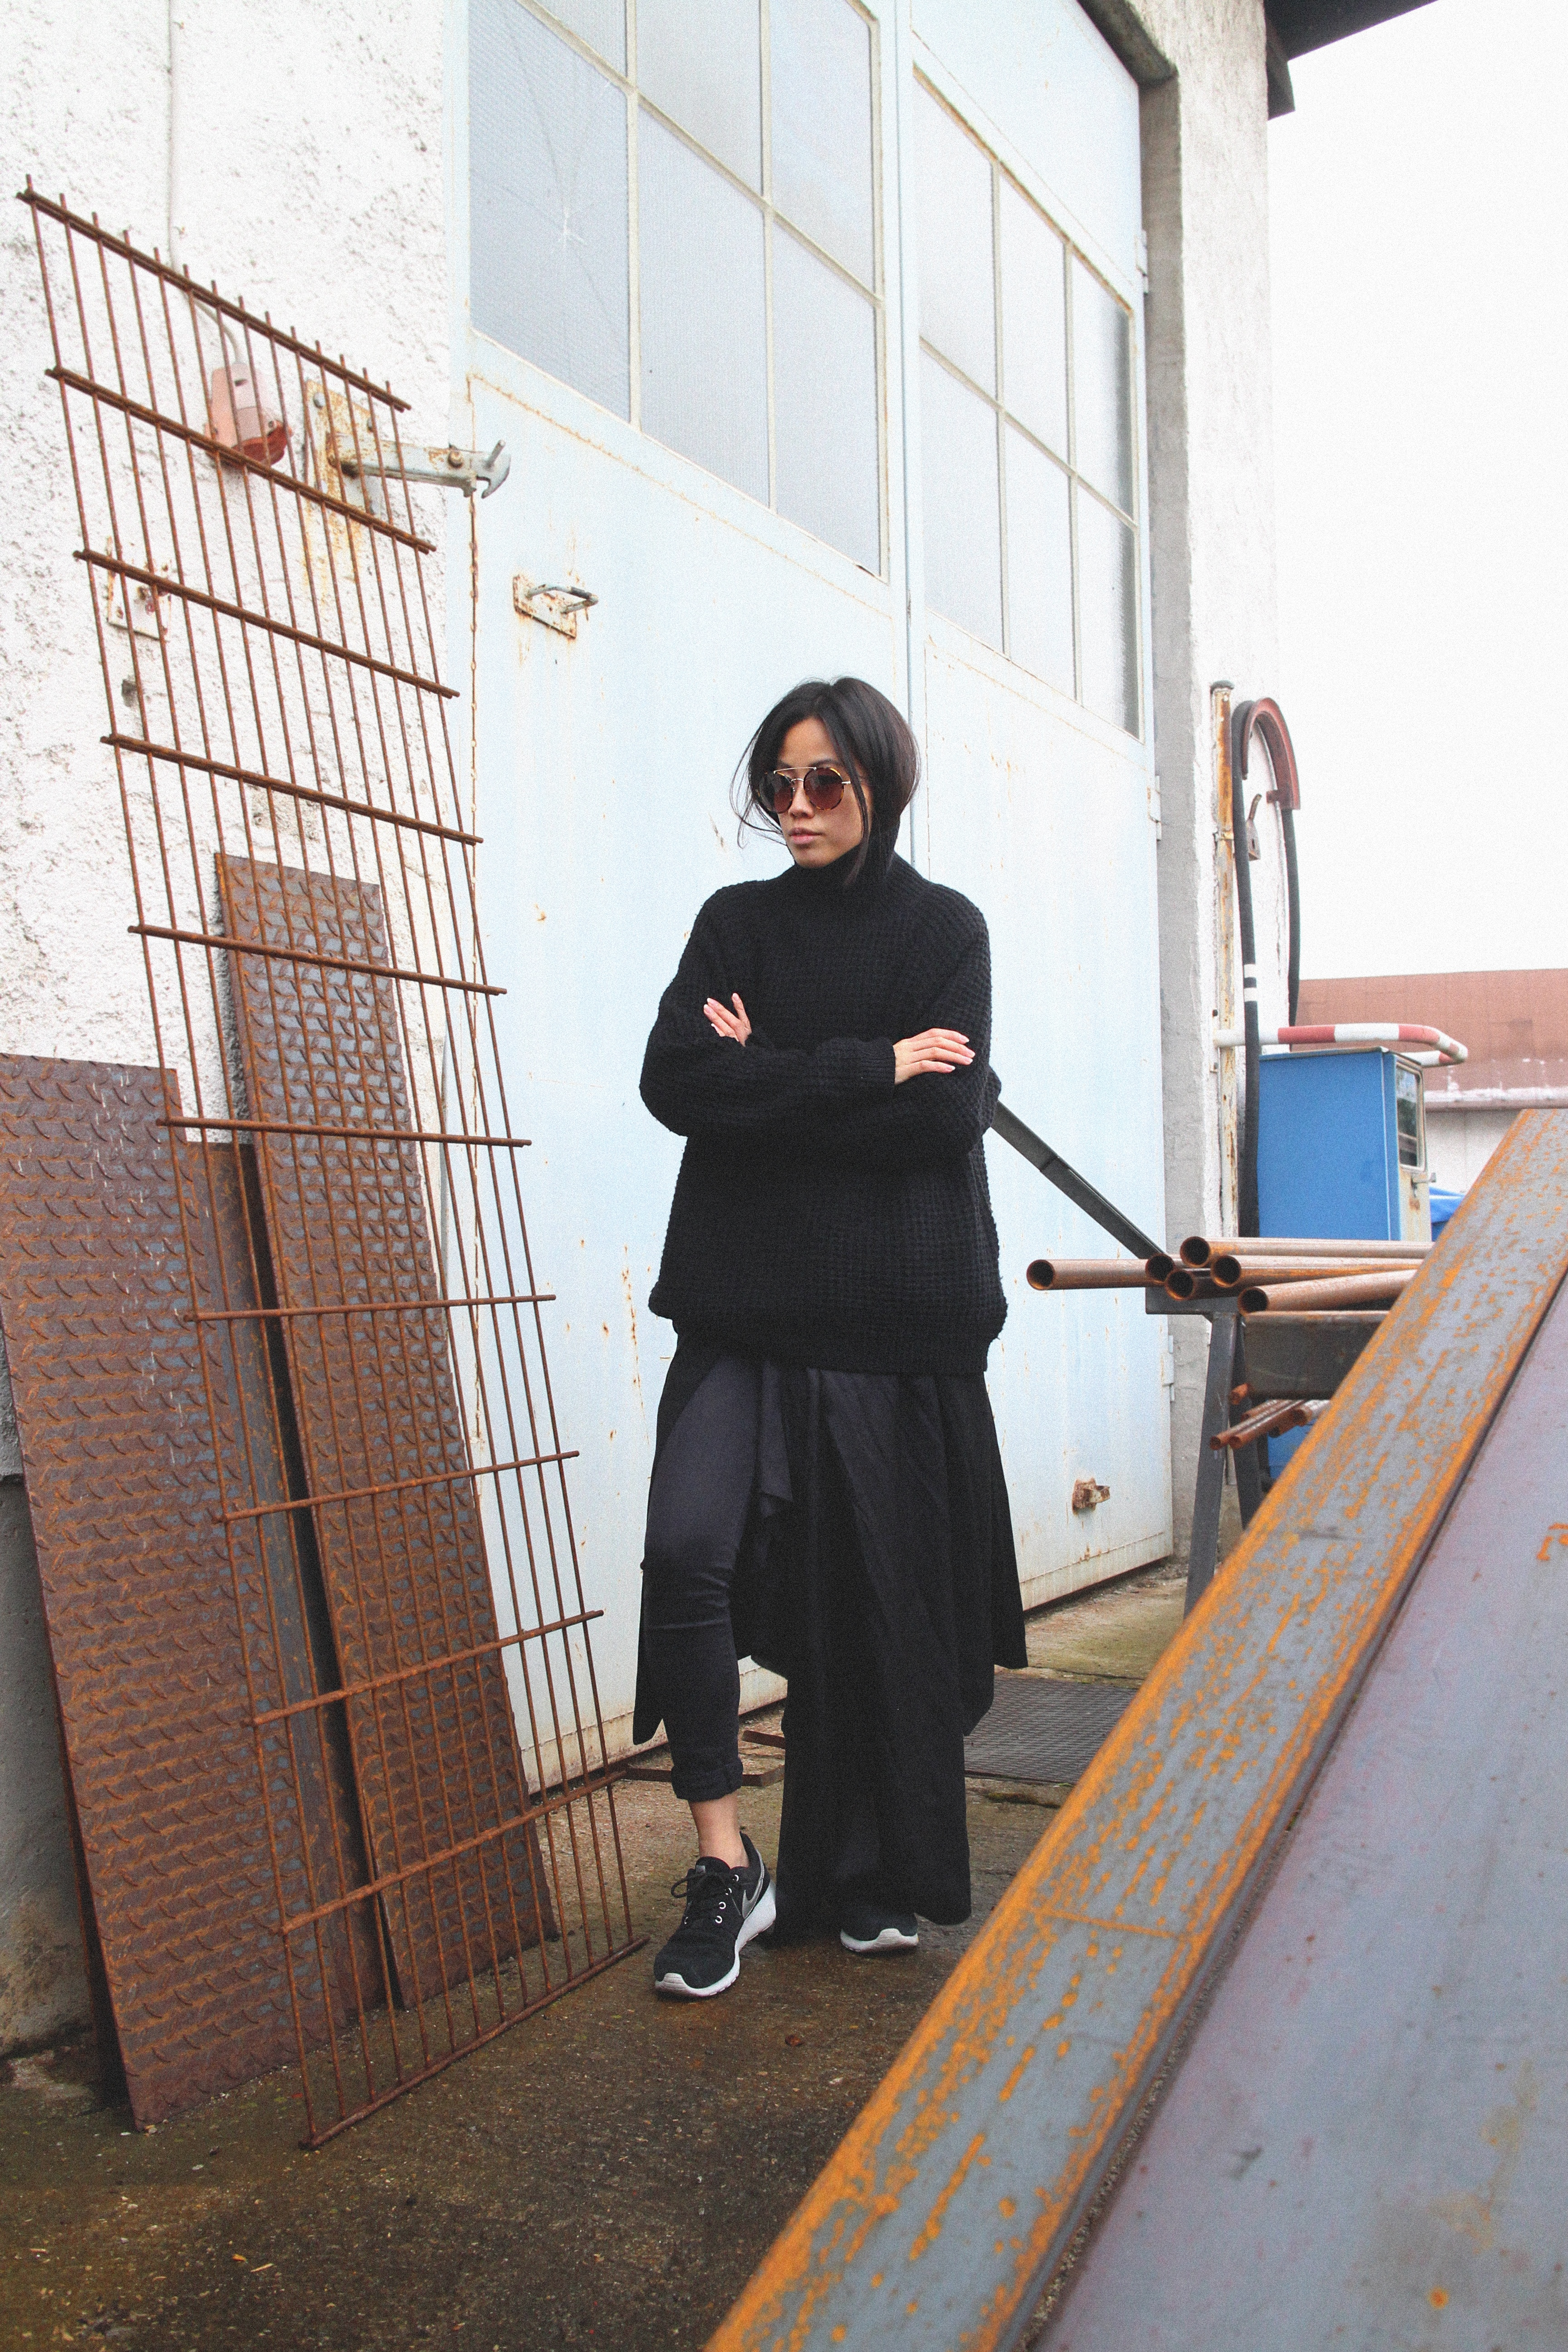 IHEARTALICE.DE – Fashion & Travel Blog: All Black Everything Look wearing Black Turtleneck & Nike Roshe Run